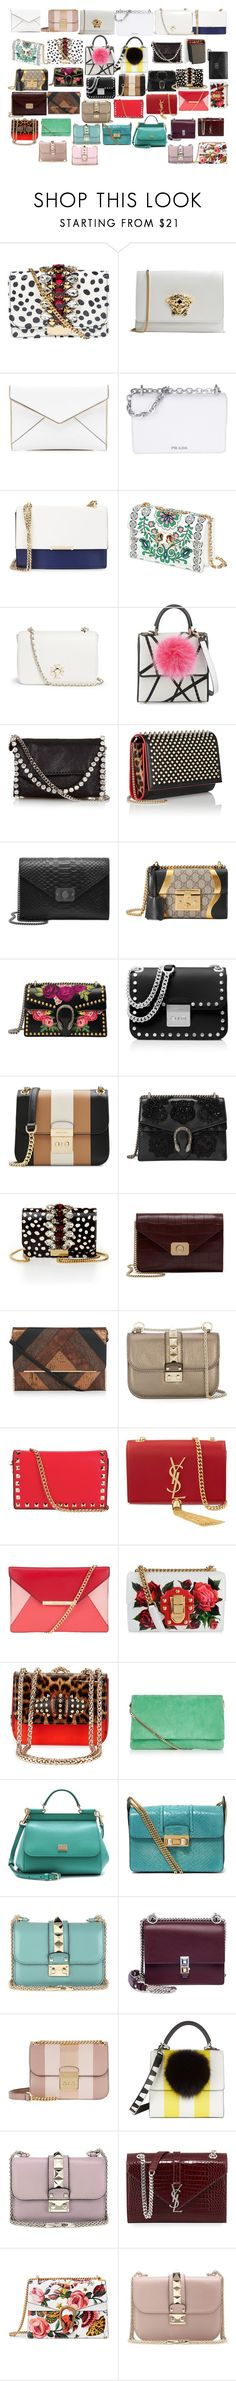 """shoulder bags 2"" by azra-99 ❤ liked on Polyvore featuring GEDEBE, Versace, Rebecca Minkoff, Prada, Ivanka Trump, Tory Burch, Les Petits Joueurs, STELLA McCARTNEY, Christian Louboutin and Mulberry"